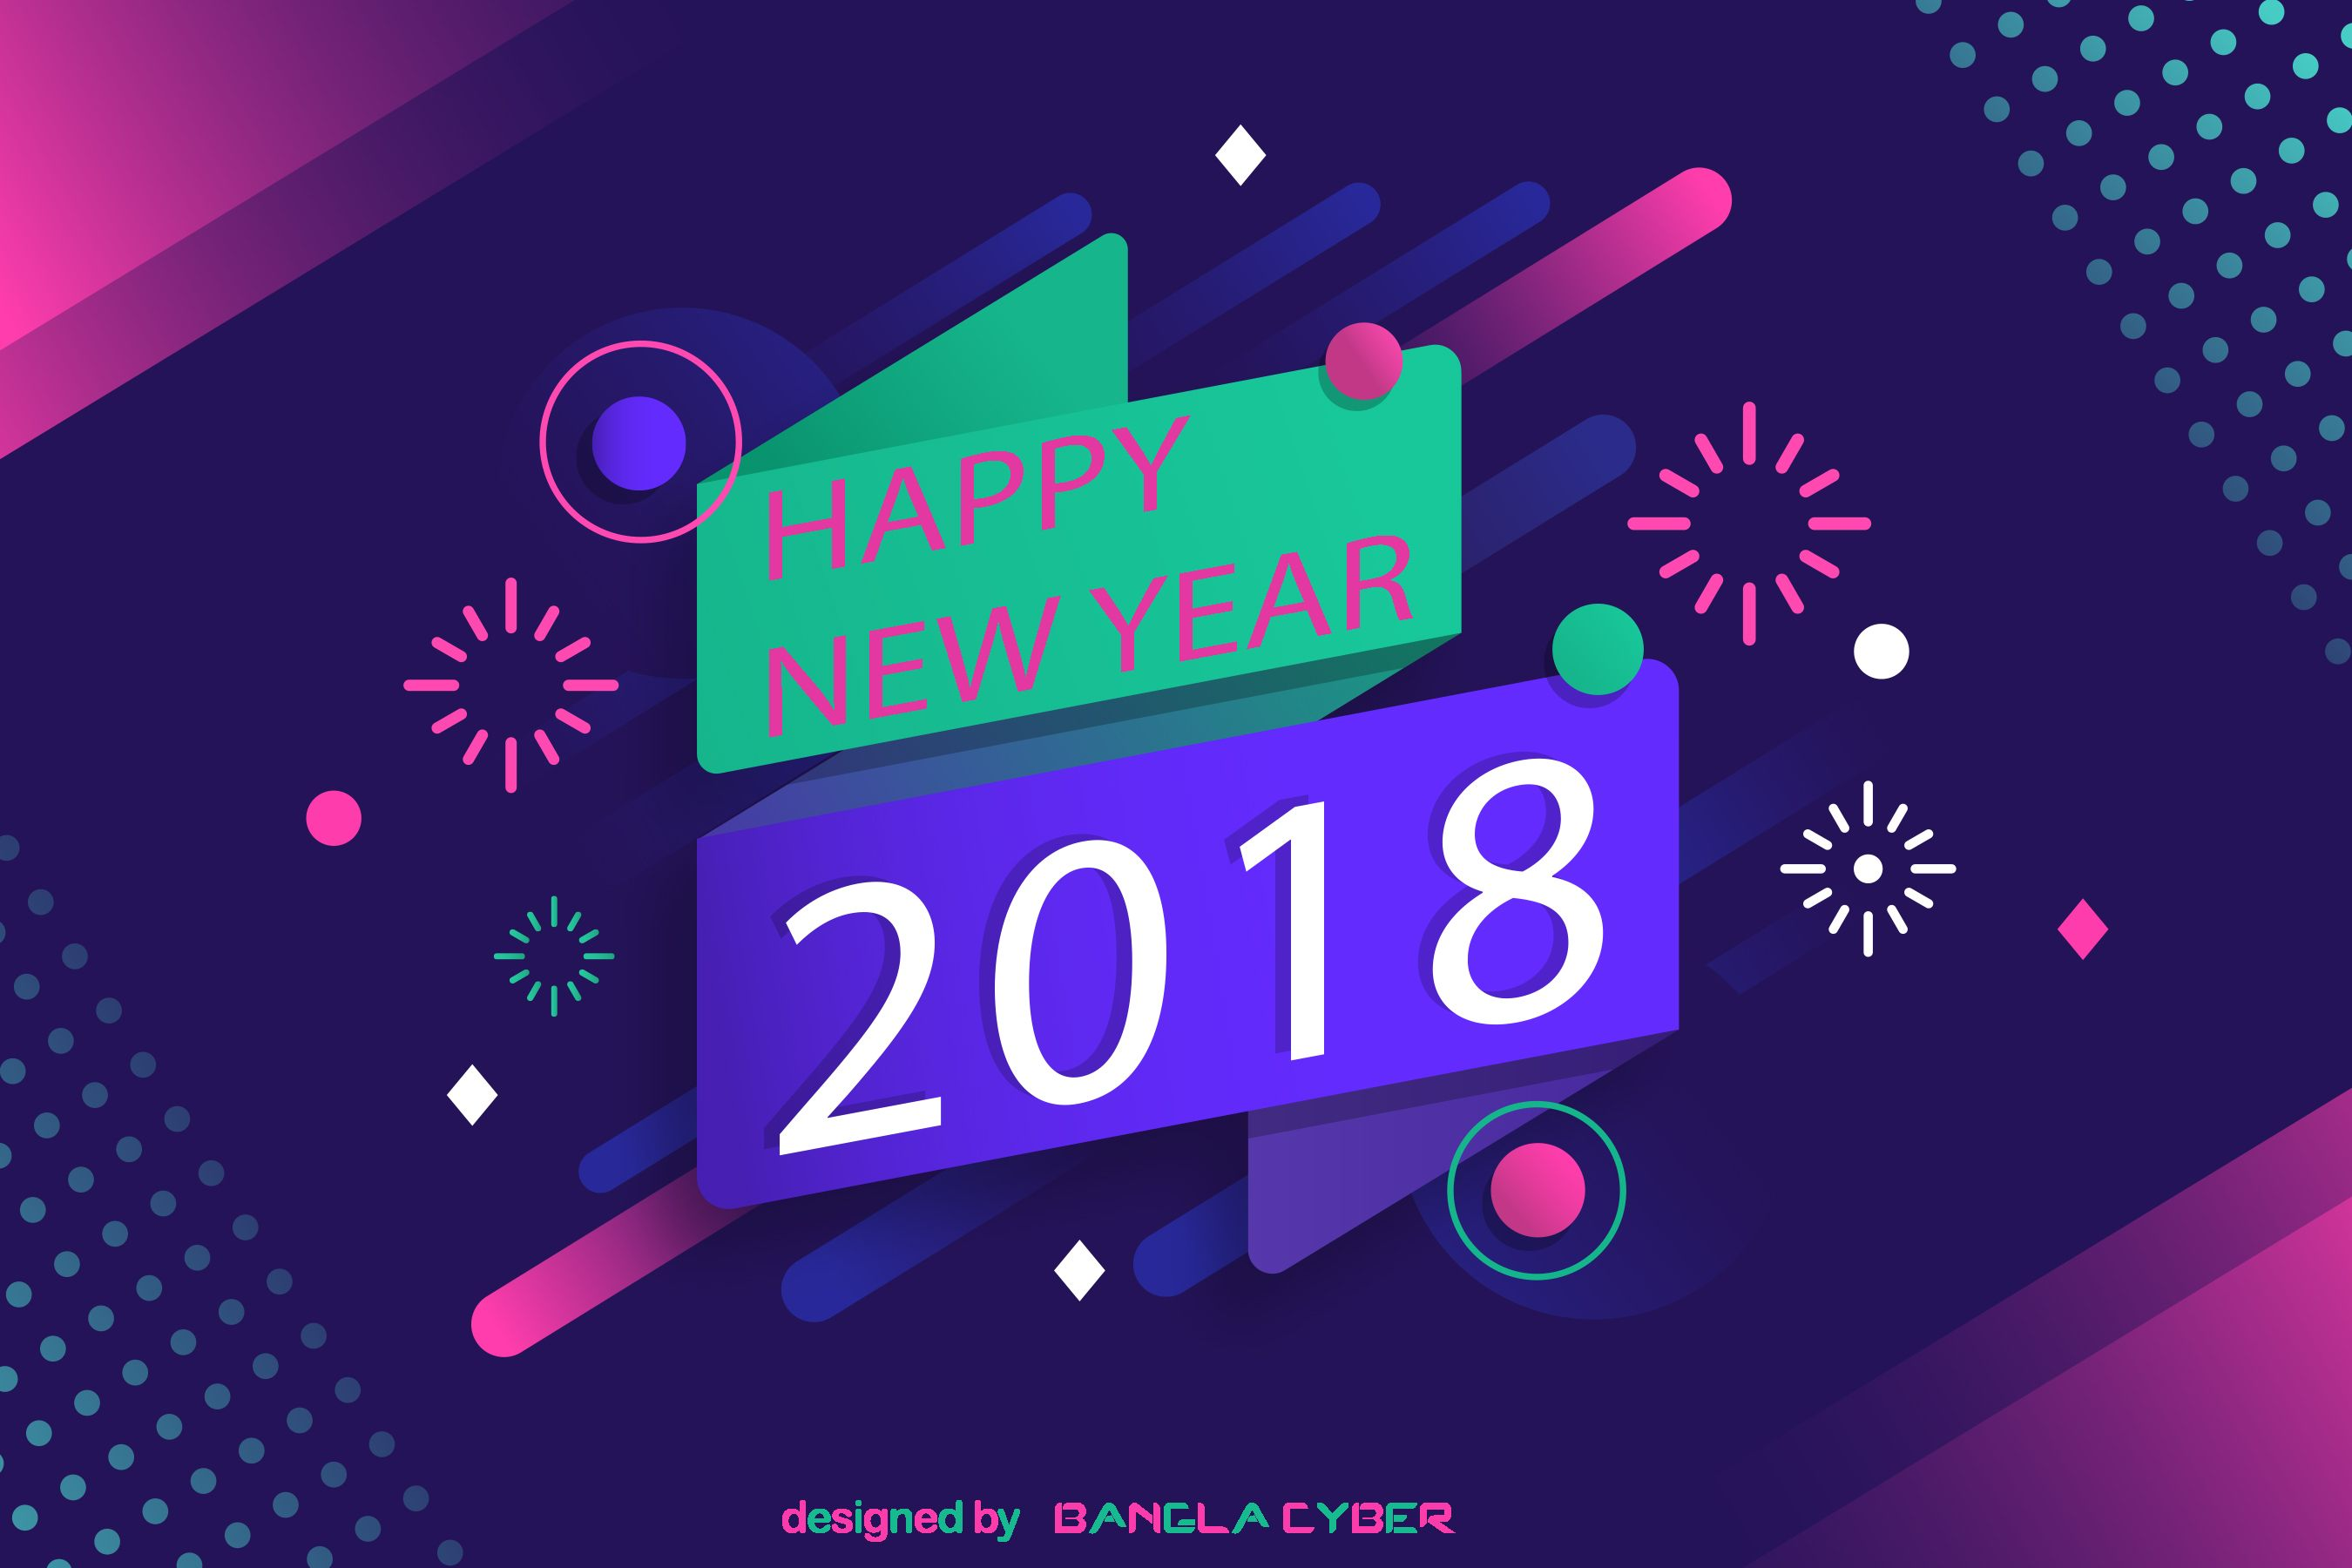 Happy New Year 2018 Happy New Year Pinterest Perfect Word